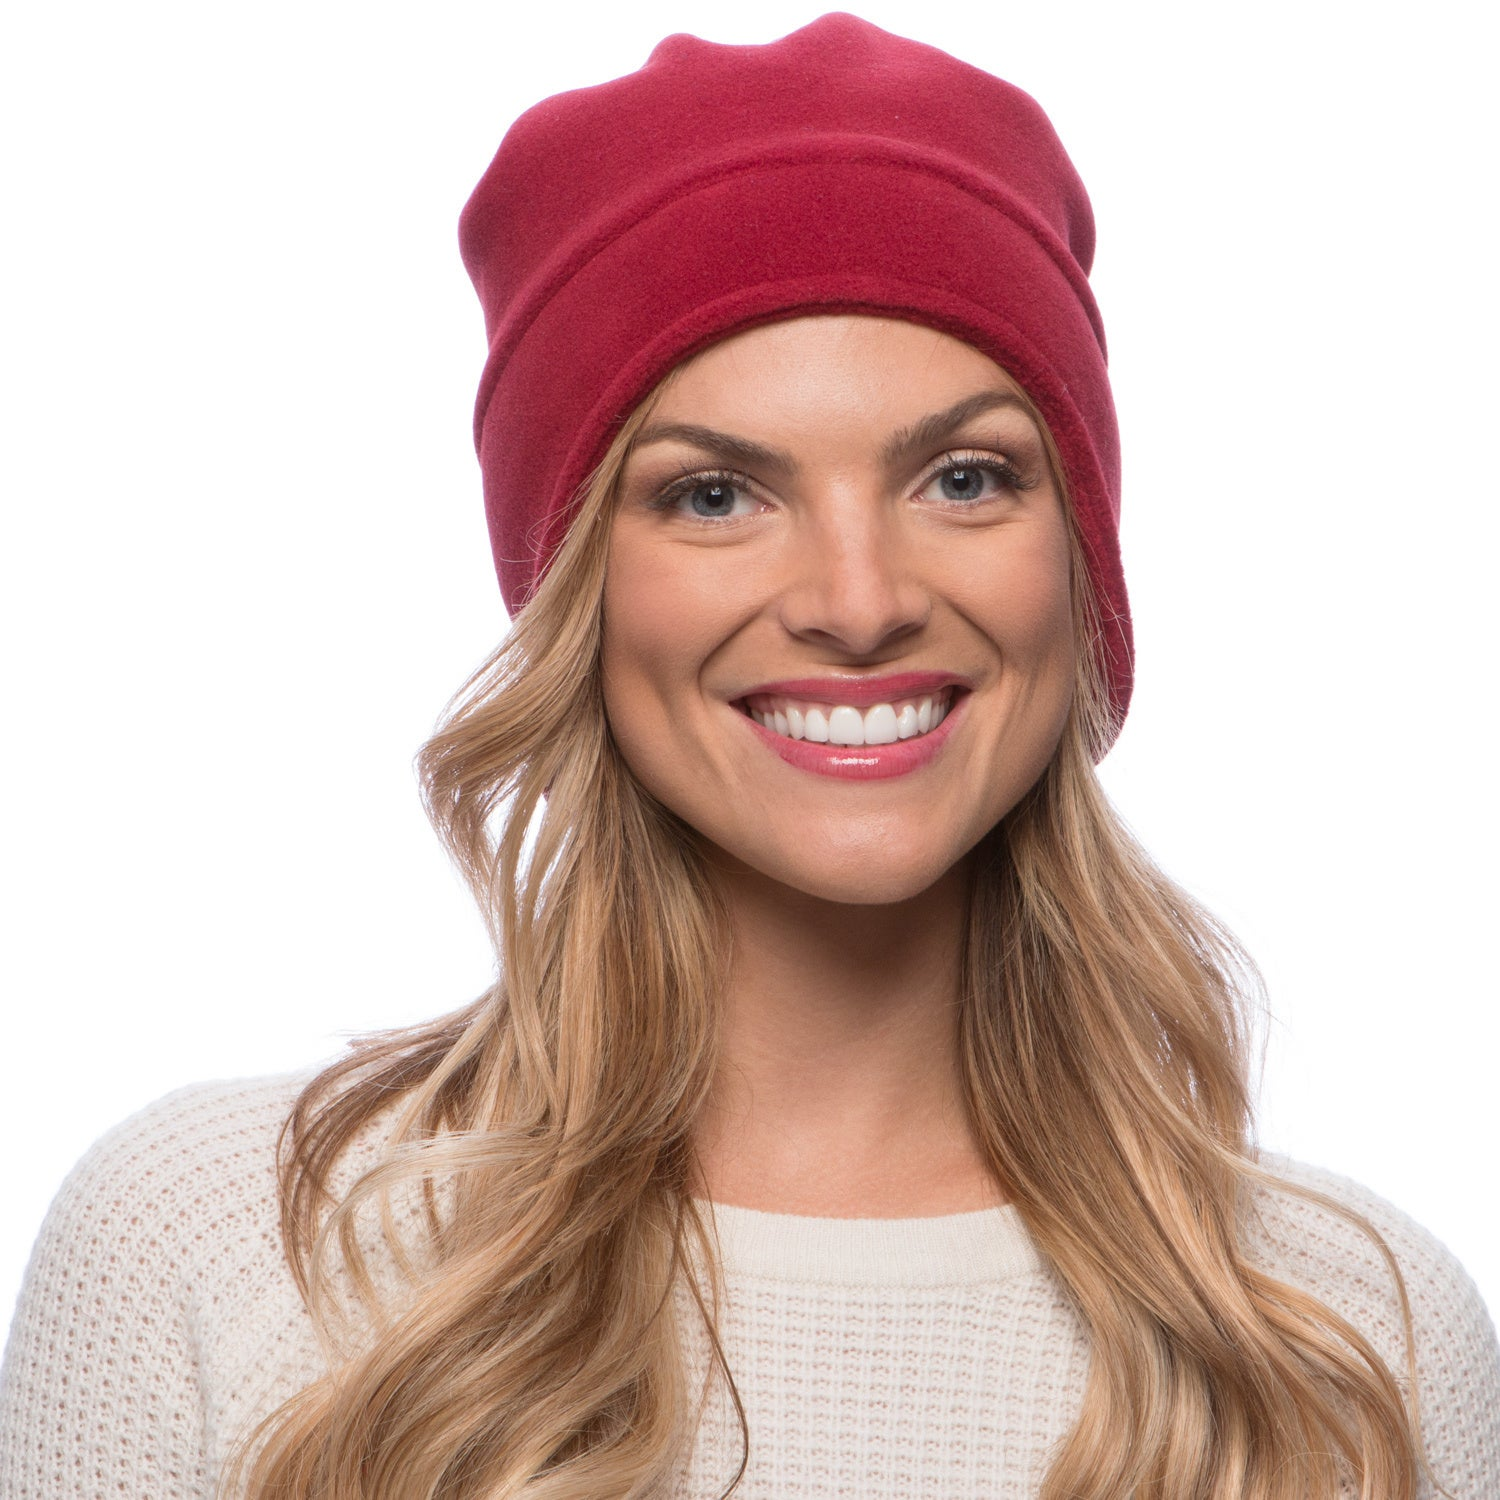 f2e8b0d6f44 Shop Kenyon Polartec Polarskins Fleece Volcano  Vent Hat - Free Shipping On  Orders Over  45 - Overstock - 10089116